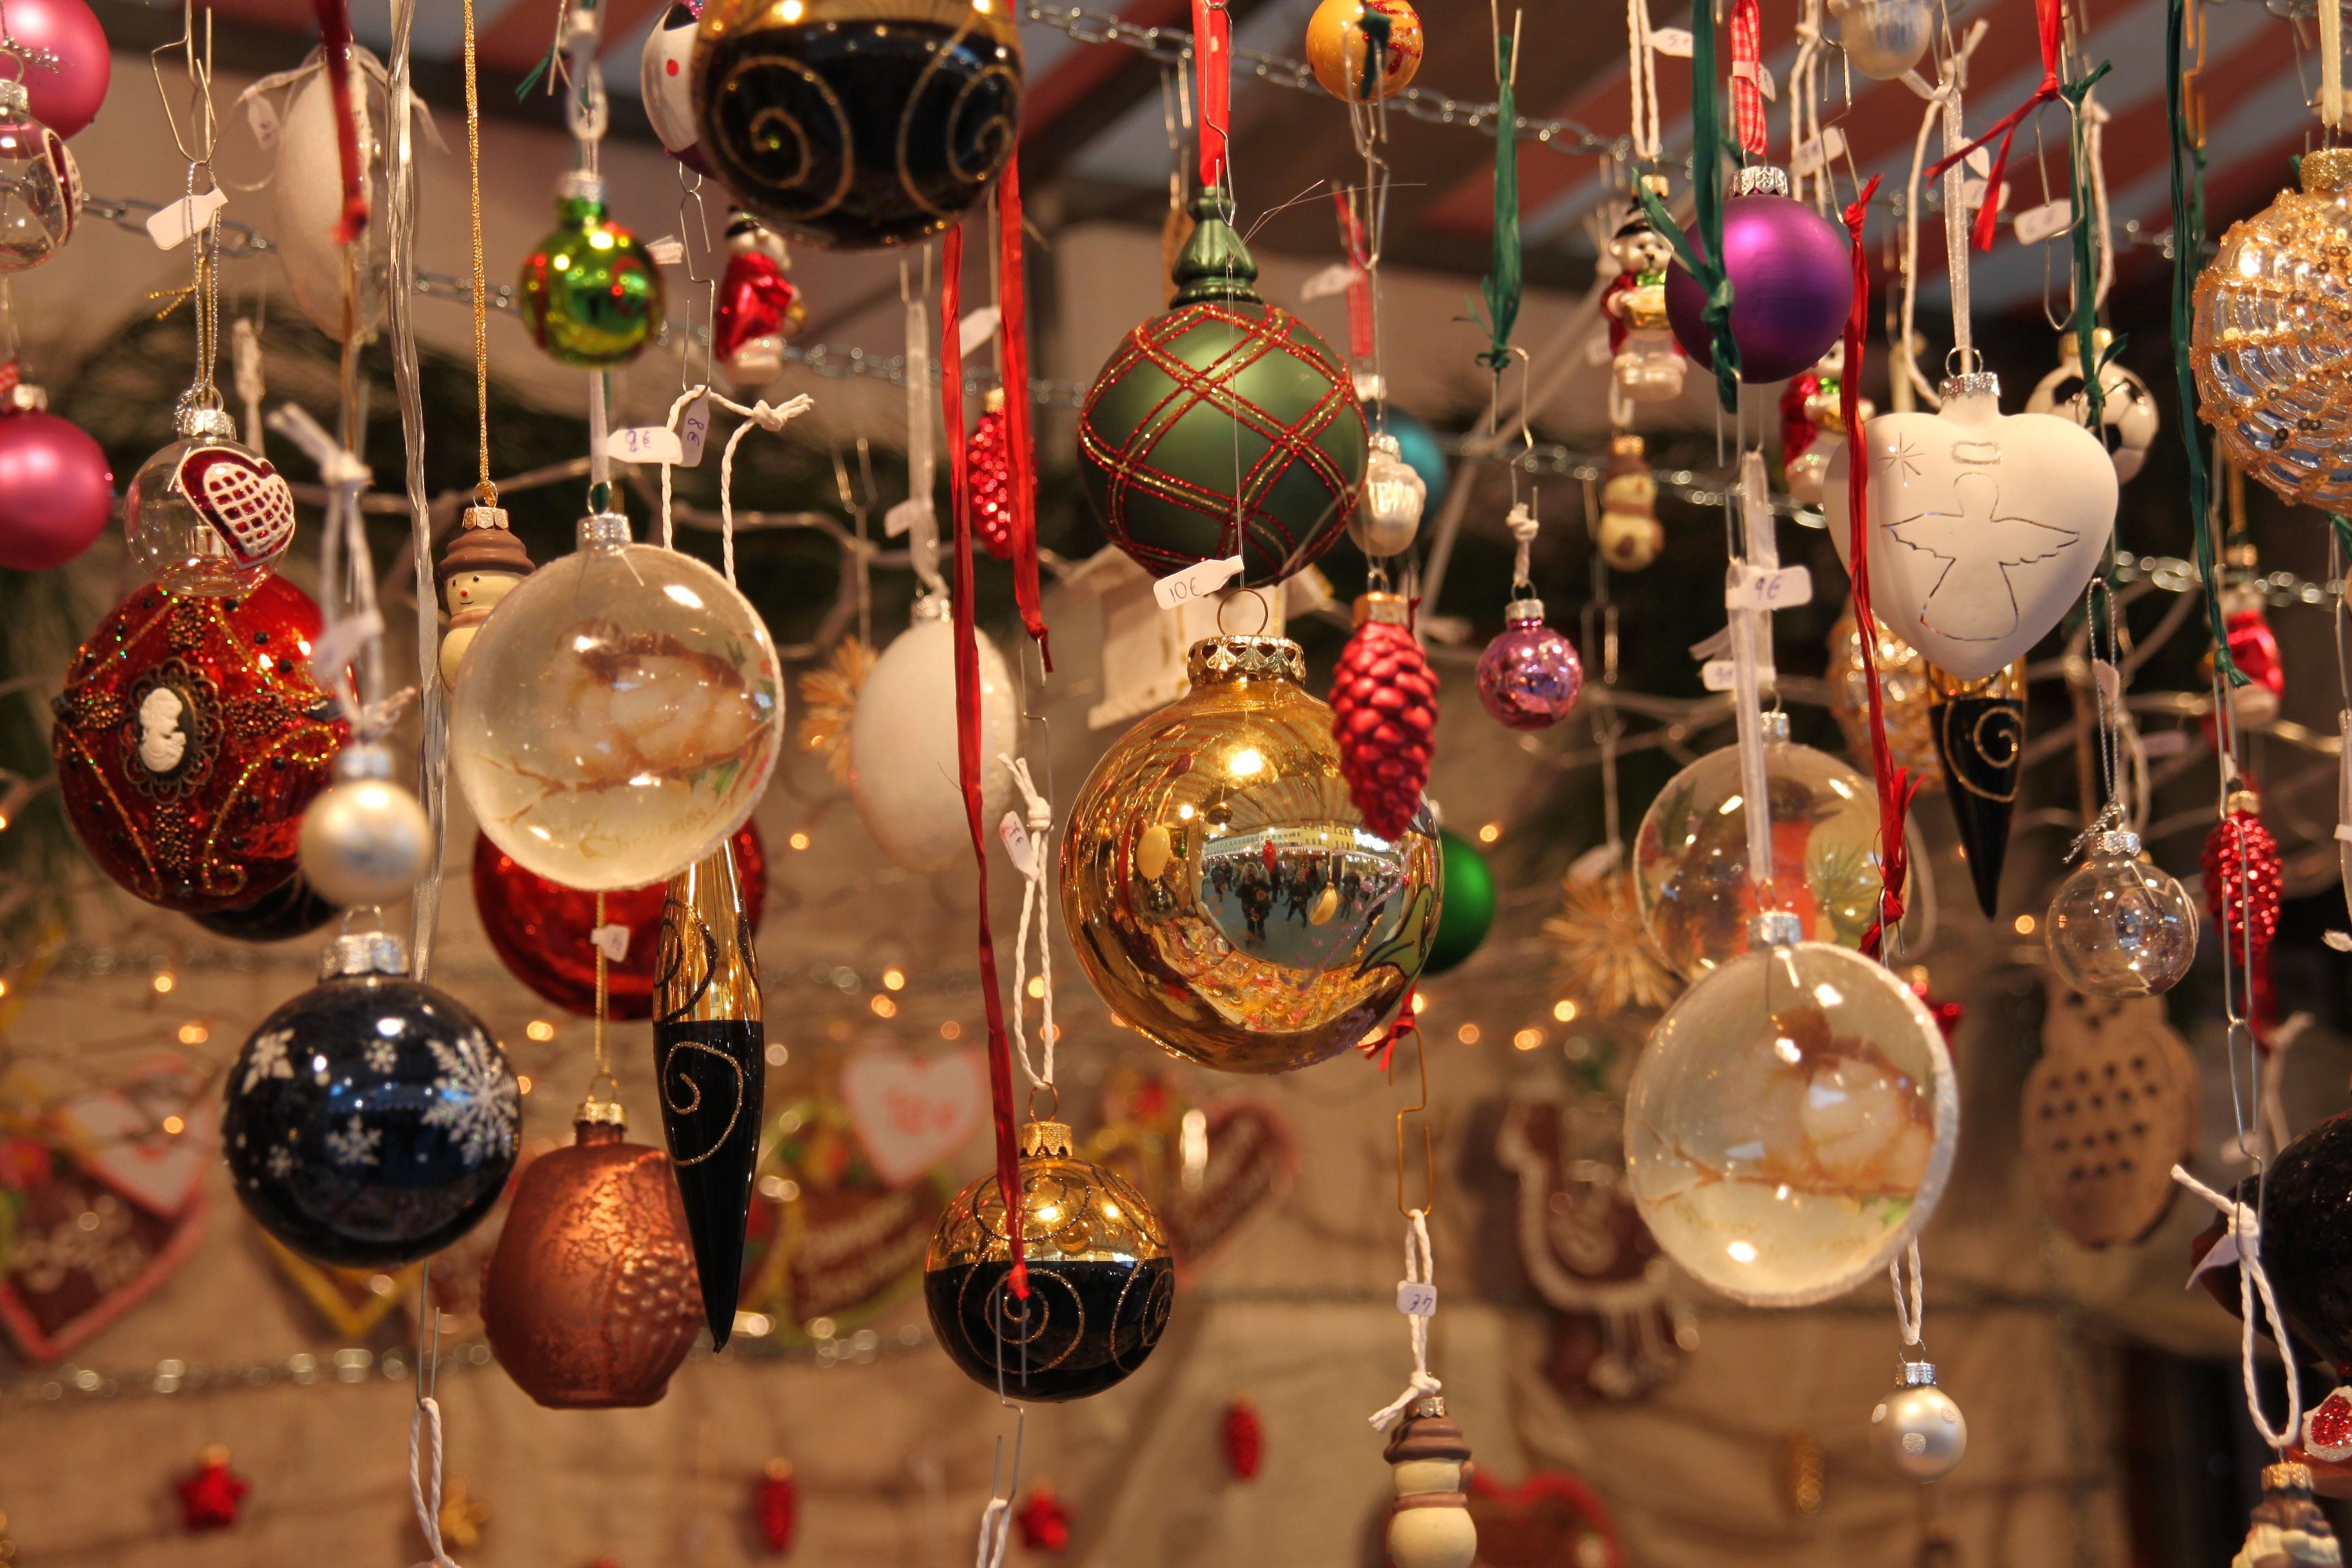 New Year and Christmas decorations do it yourself - ideas 69